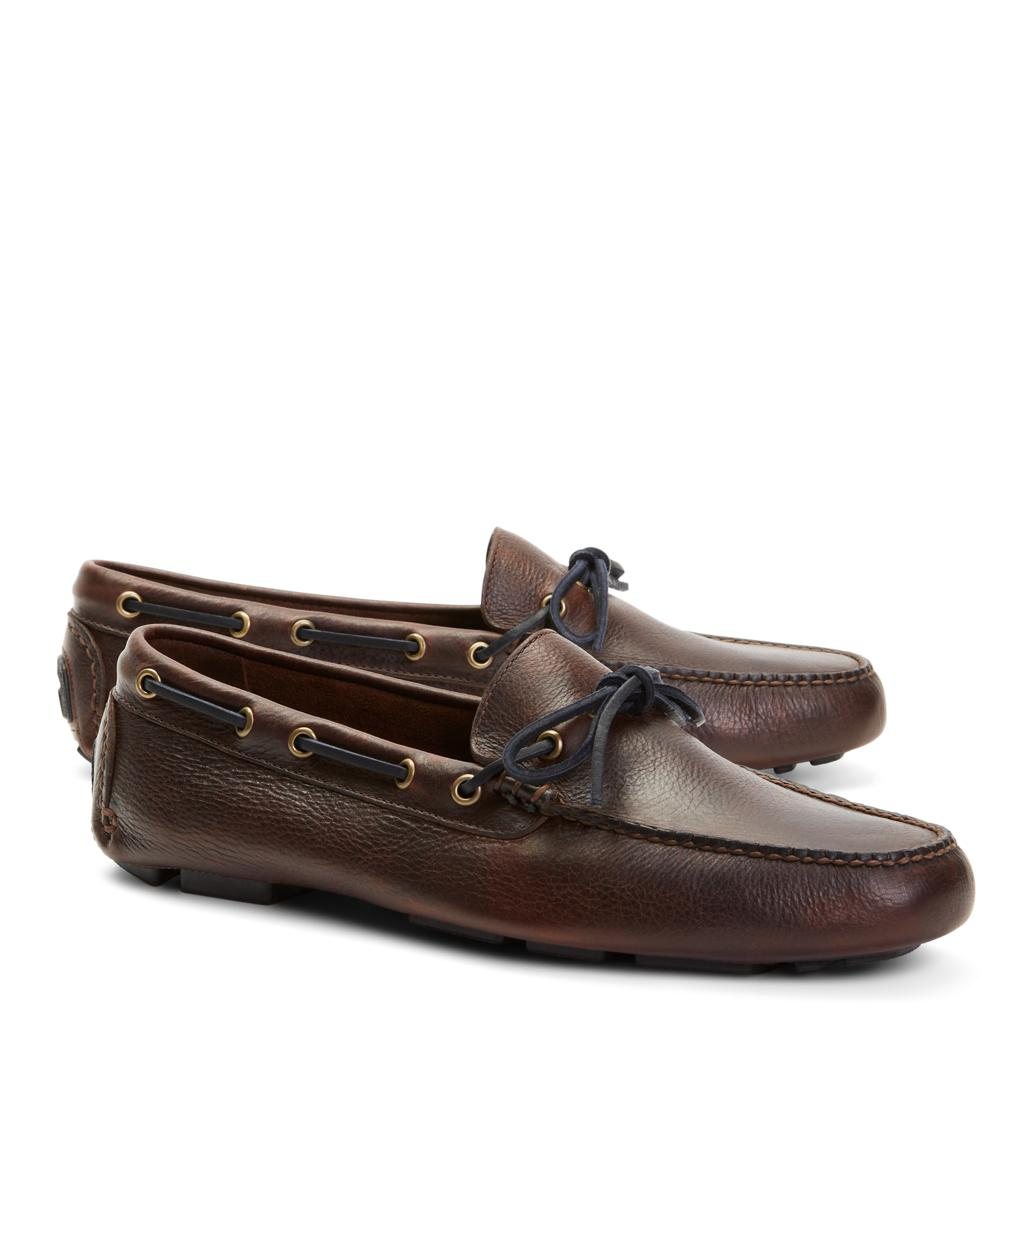 133255bff348 Lyst - Brooks Brothers Pebble Leather Driving Mocs in Brown for Men